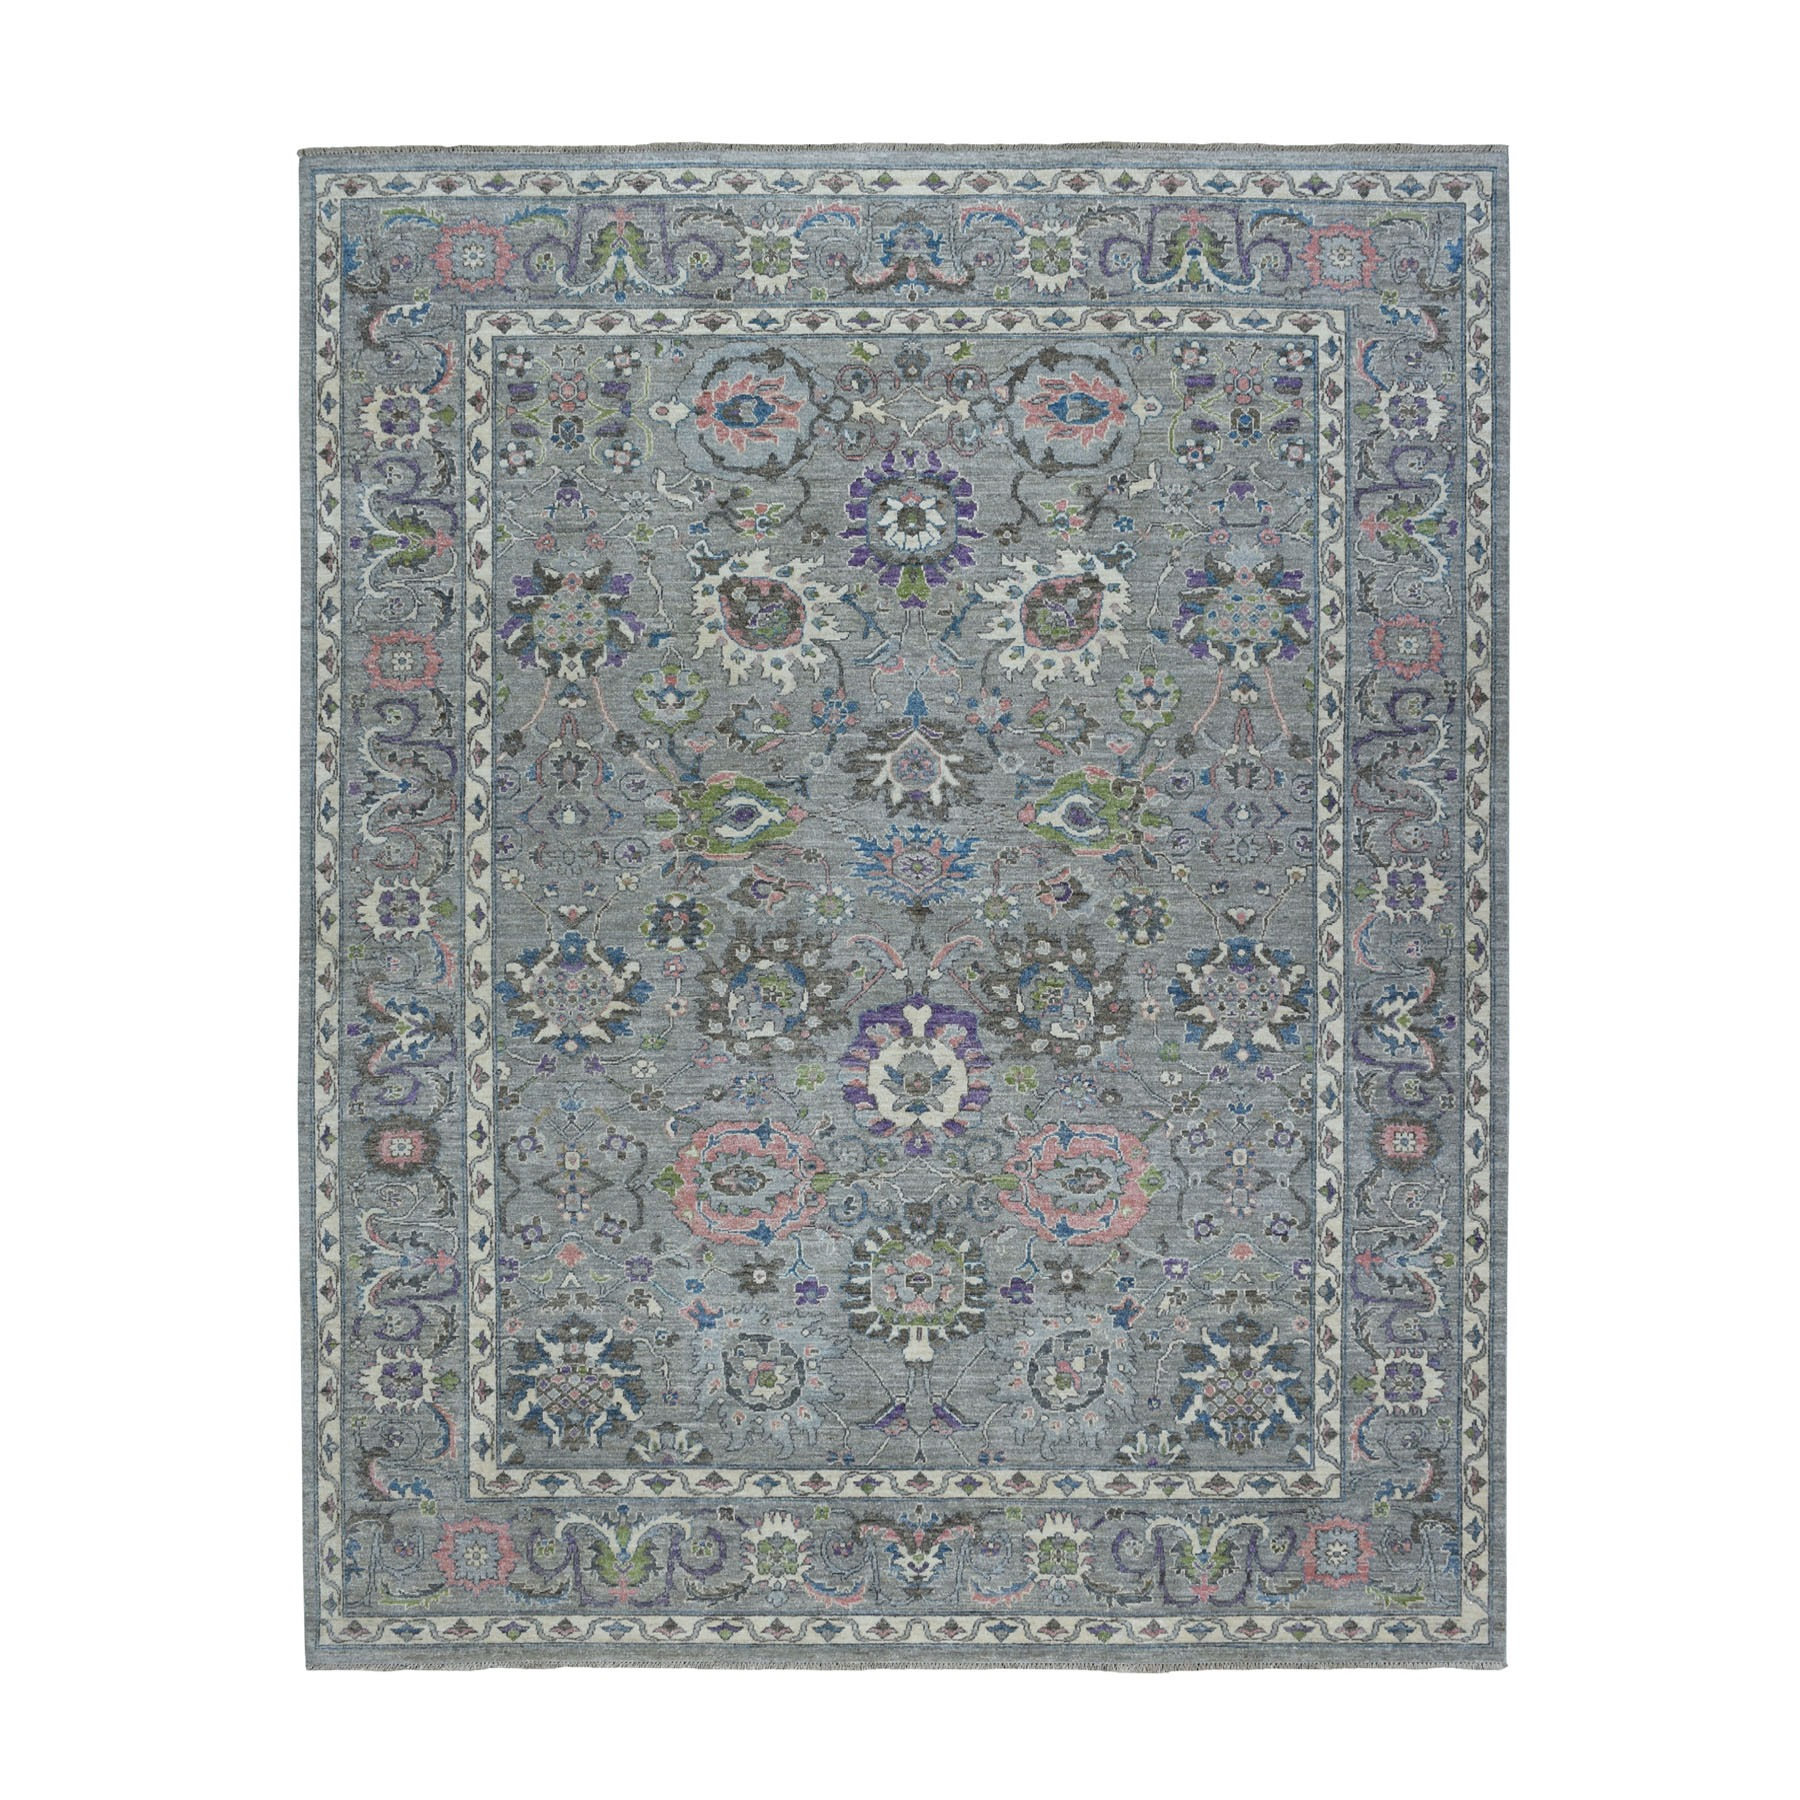 8'X10' Gray Peshawar, Colorful Collection Pure Wool Hand Knotted Oriental Rug moaebb79